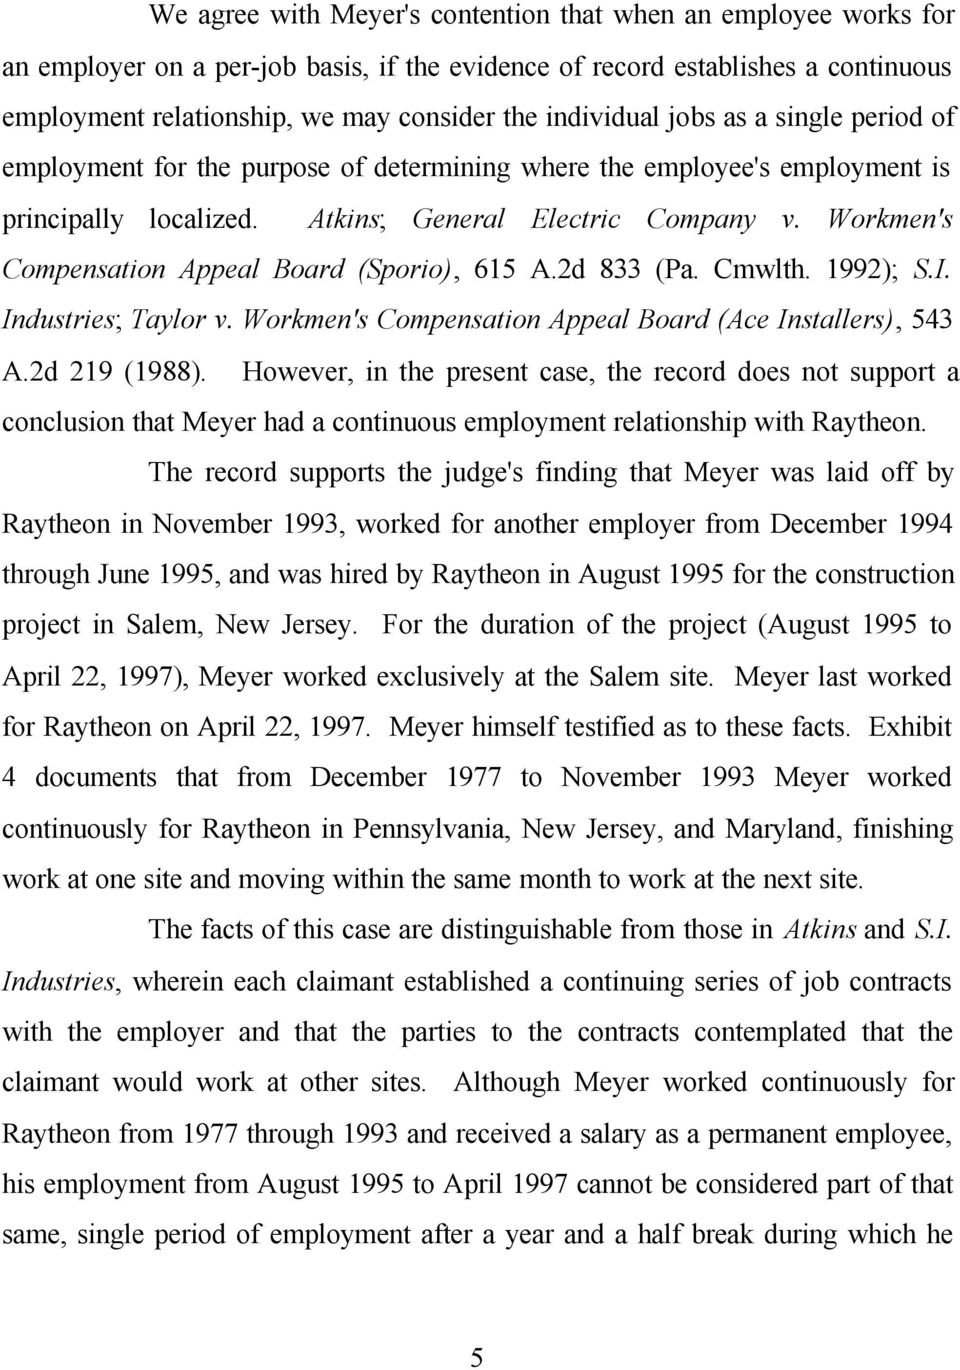 Workmen's Compensation Appeal Board (Sporio), 615 A.2d 833 (Pa. Cmwlth. 1992); S.I. Industries; Taylor v. Workmen's Compensation Appeal Board (Ace Installers), 543 A.2d 219 (1988).